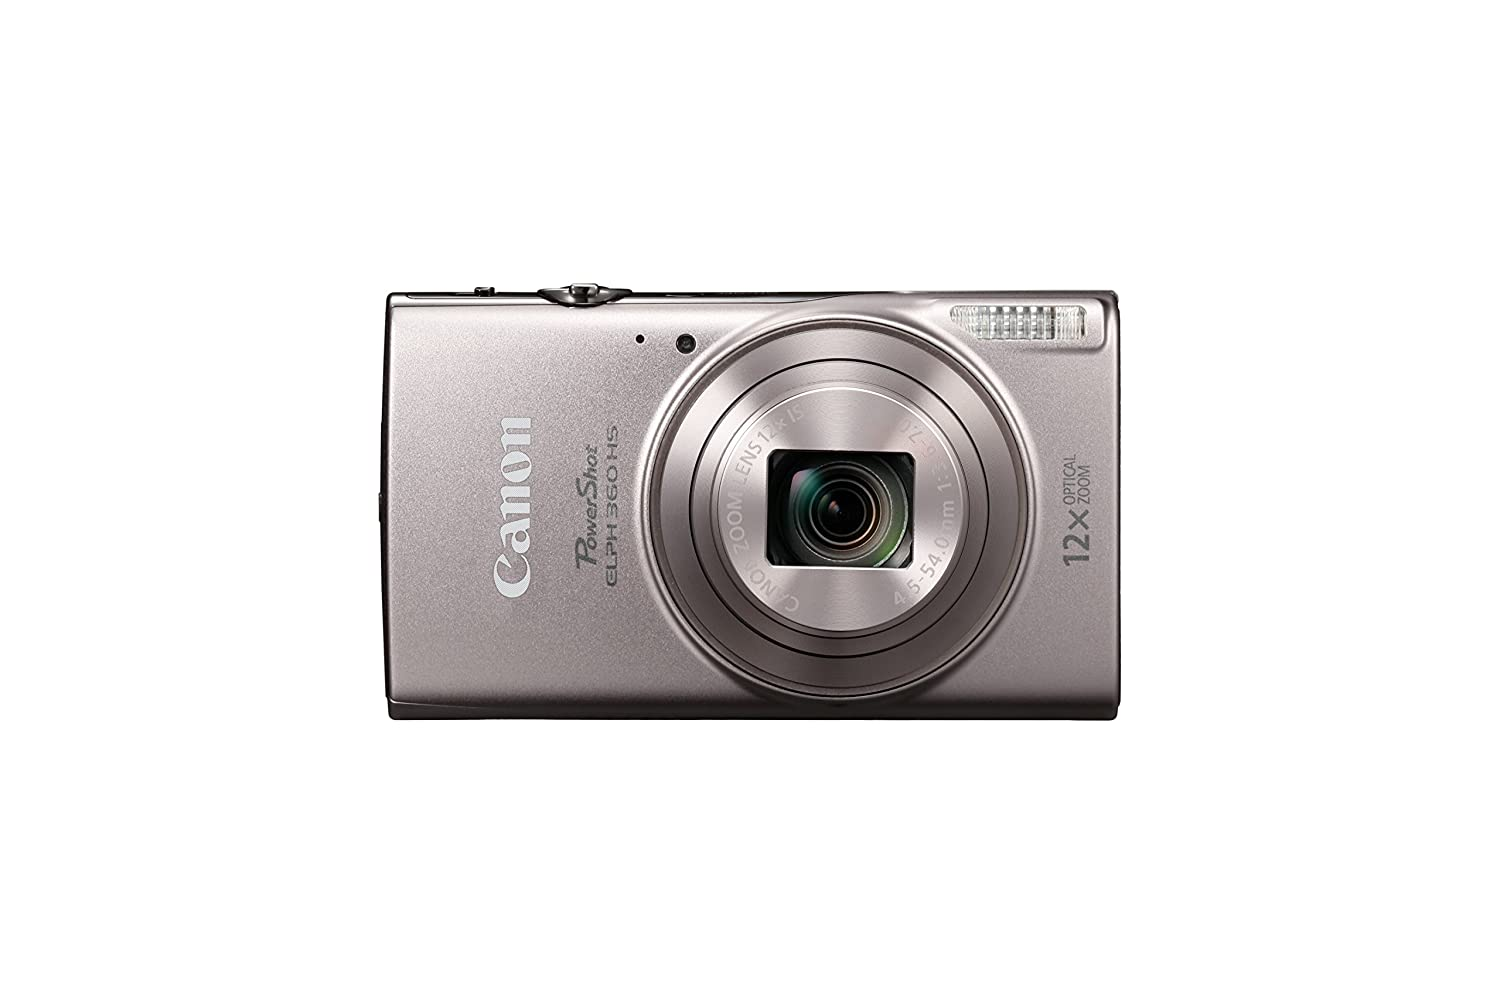 Amazon.com : Canon PowerShot ELPH 360 Digital Camera w/12x Optical Zoom and  Image Stabilization - Wi-Fi & NFC Enabled (Silver) : Camera & Photo